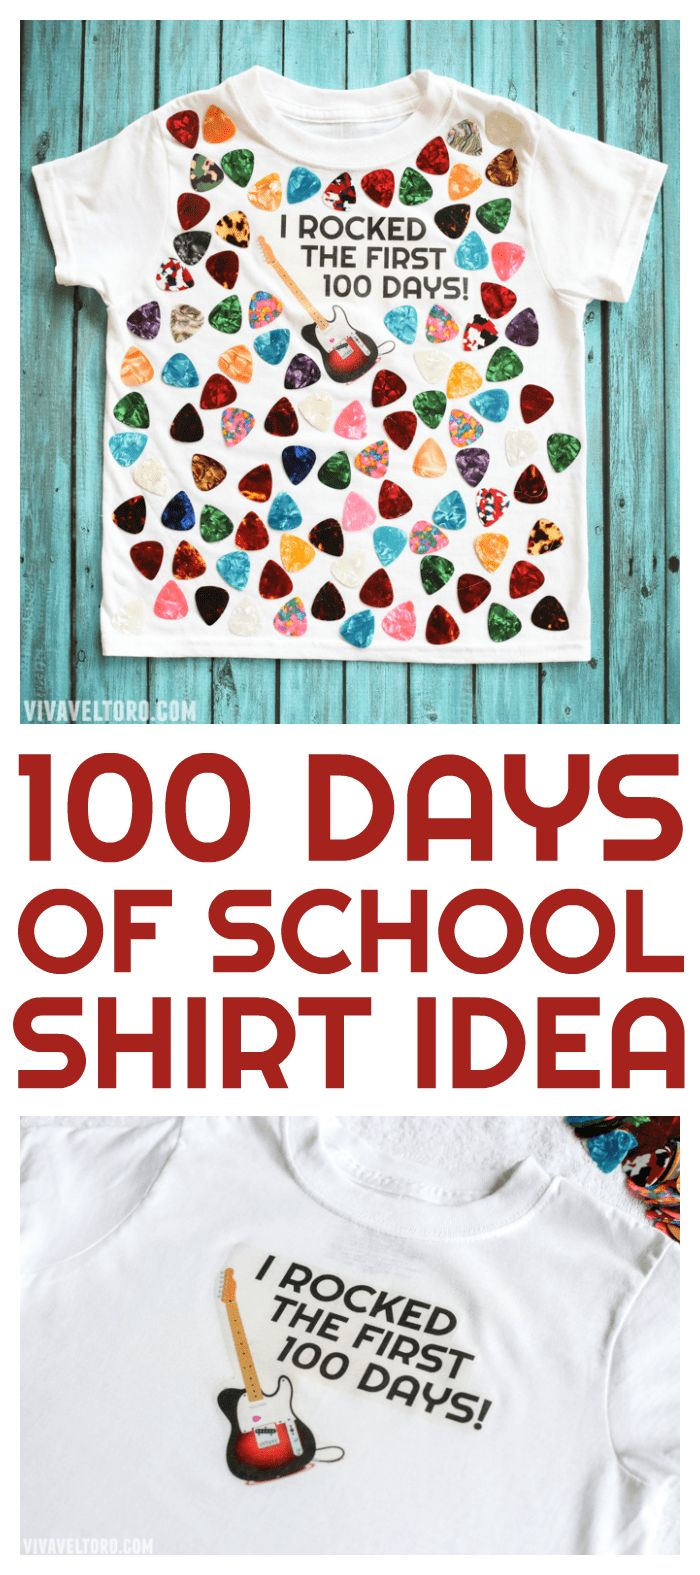 The first 100 days of school is a big deal! Here's a fun 100 days of school shirt idea so your child can celebrate like the rock star they are! #DIY #tshirt #100dayproject